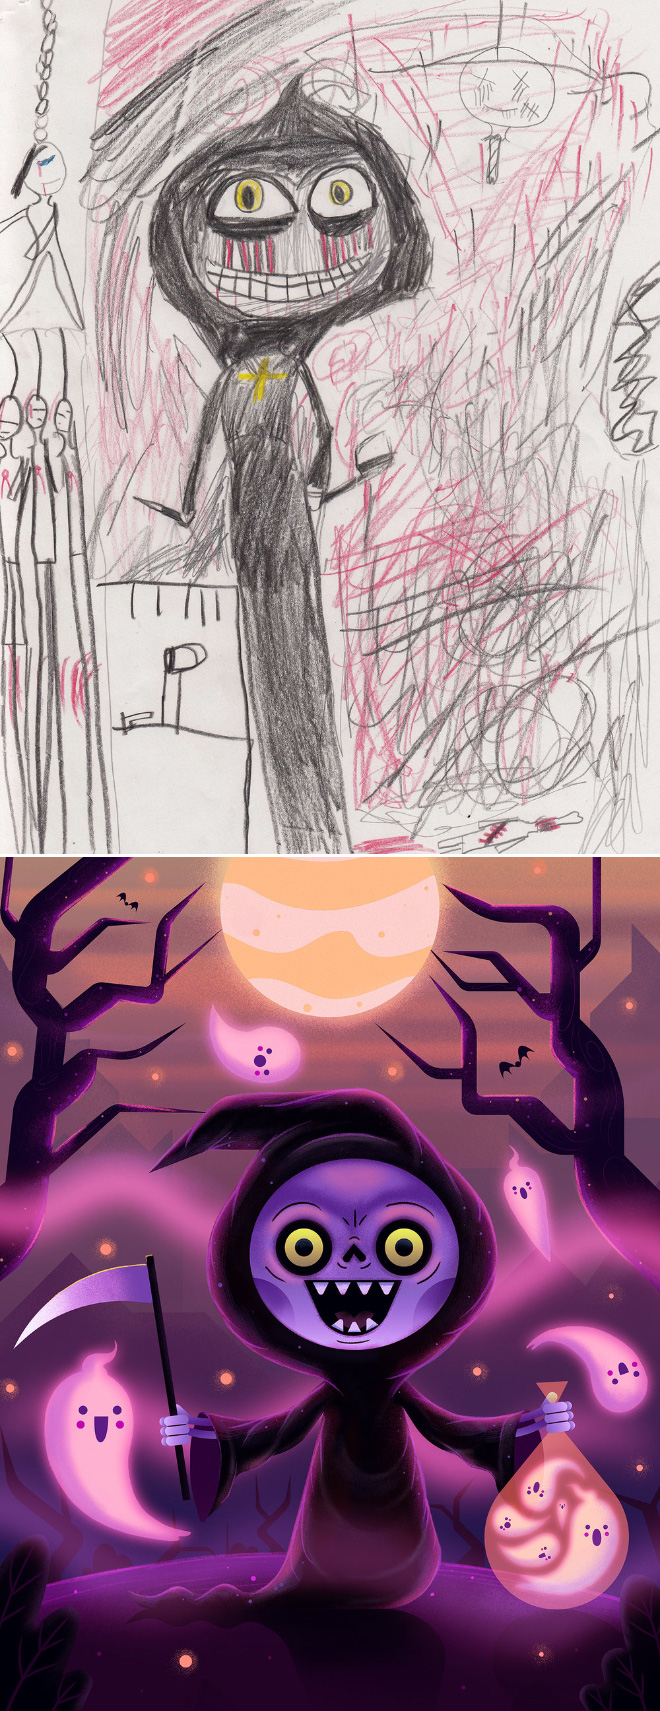 When kids' doodles get recreated by a professional artist.